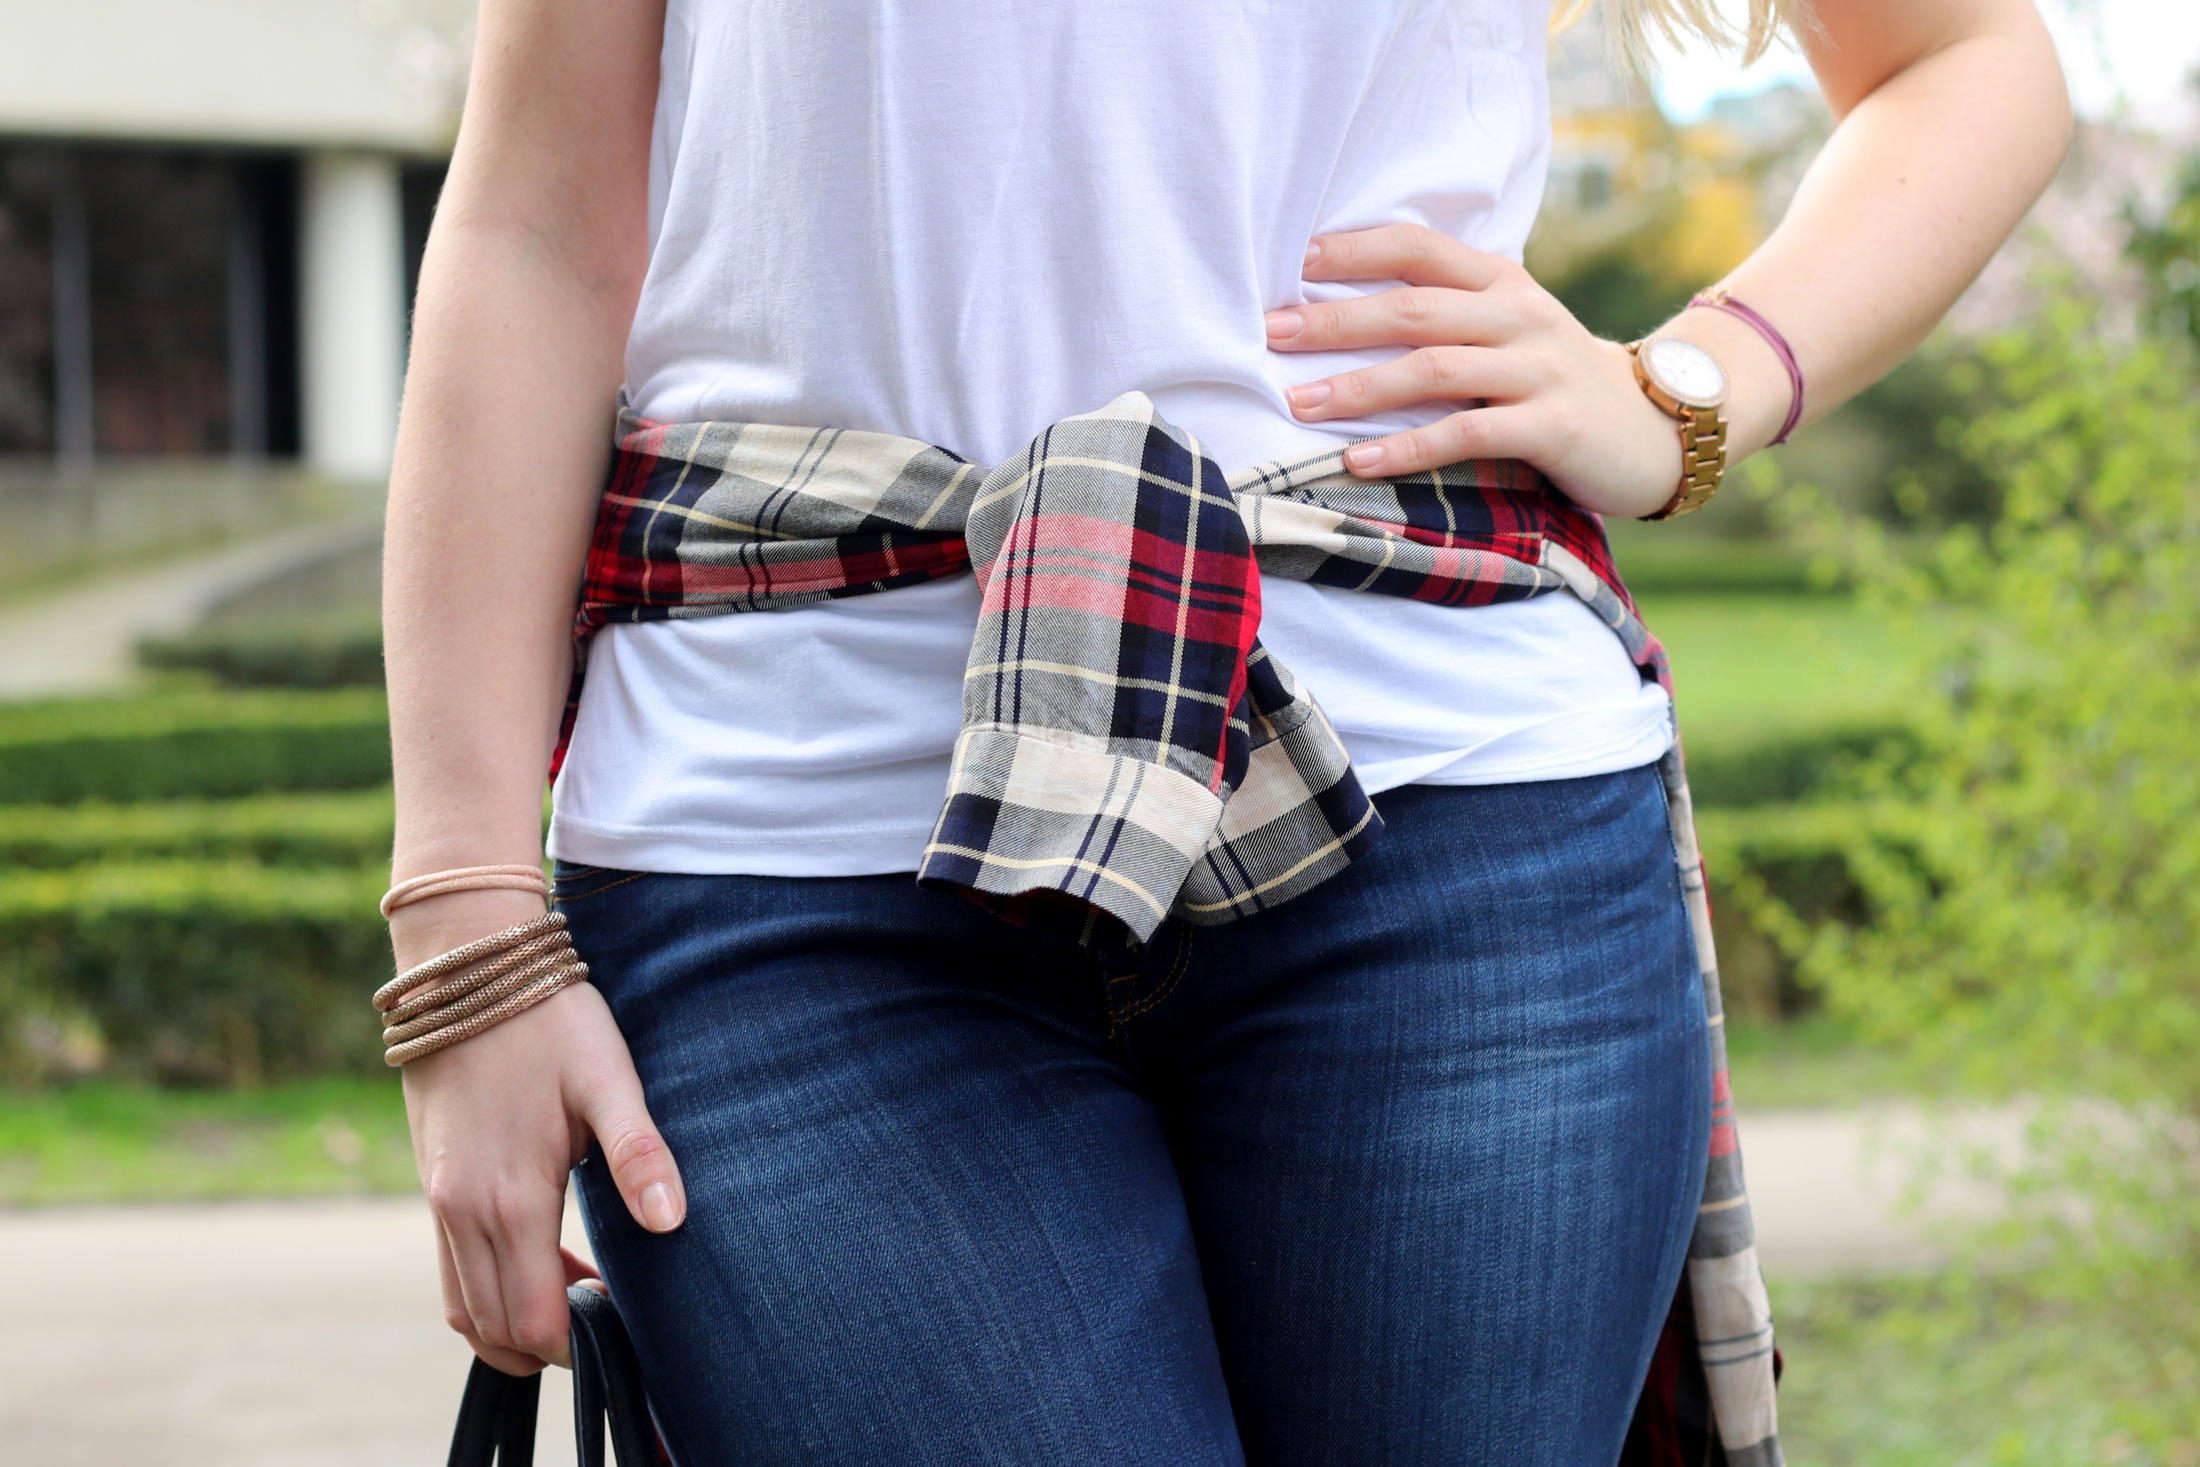 plain-shirt-white-tee-jeans-casual-look-outfit-ootd-blogger-mrsbrightside (5)